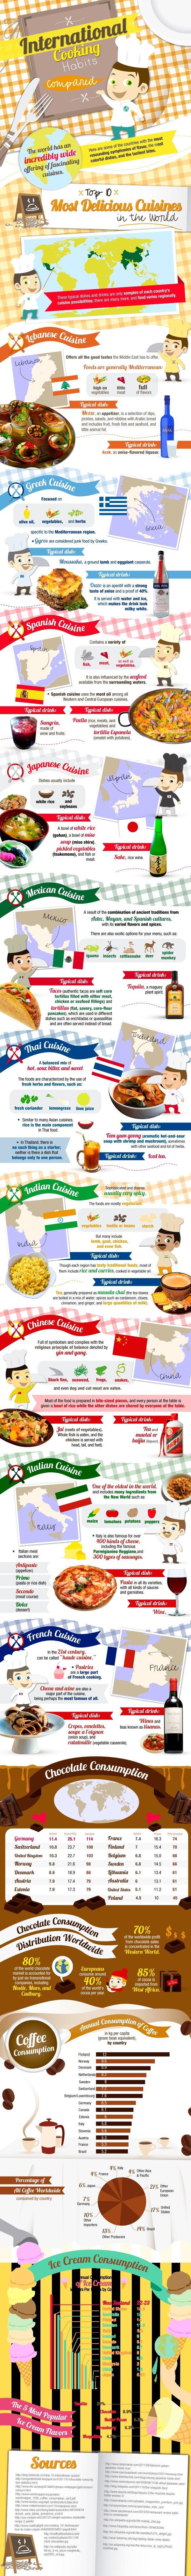 International Cooking Habits